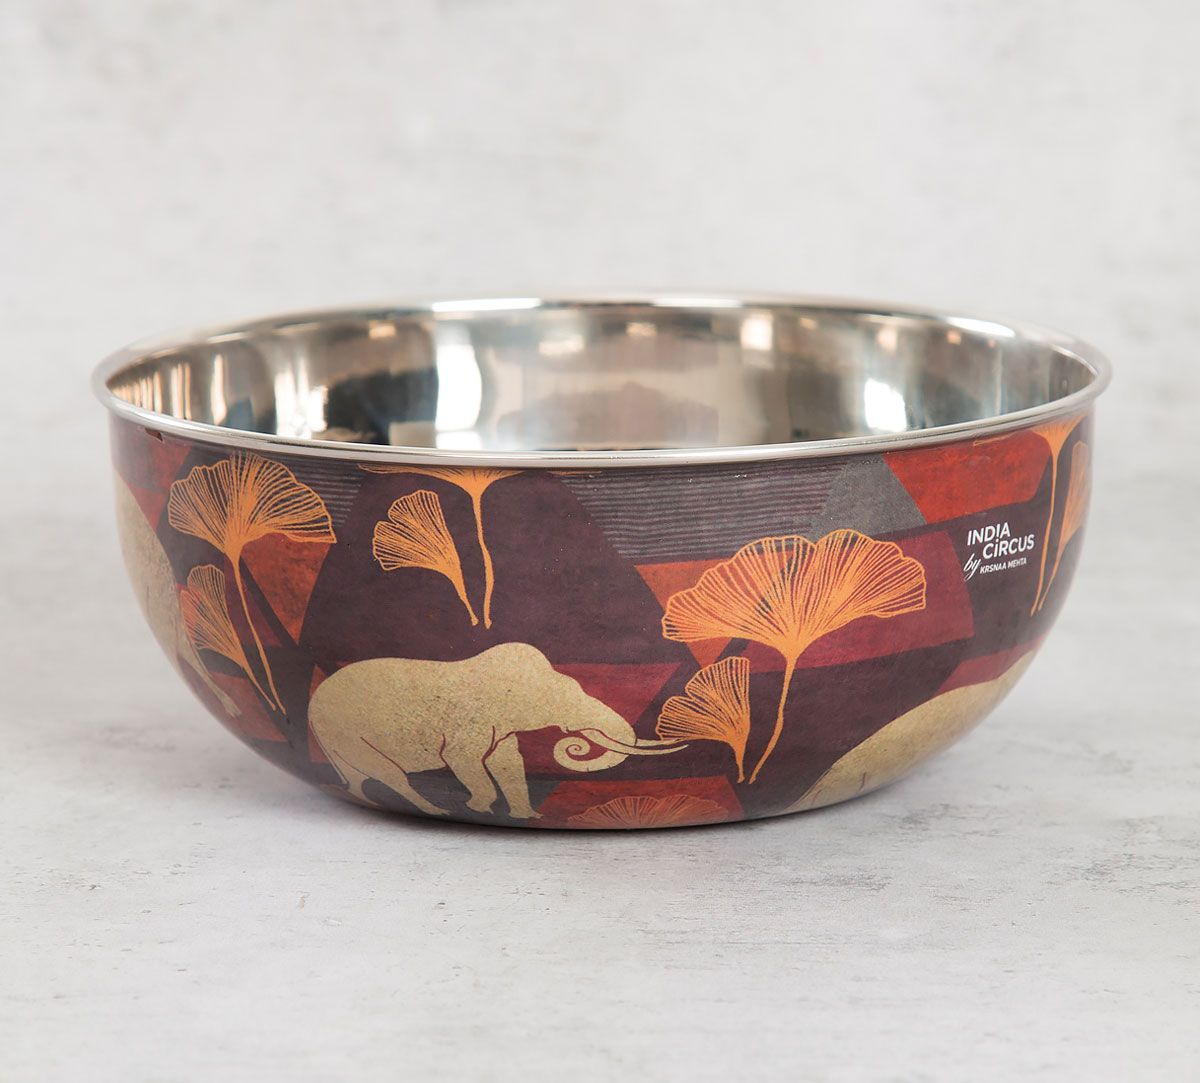 India Circus Gallant Tusker Serving Bowl